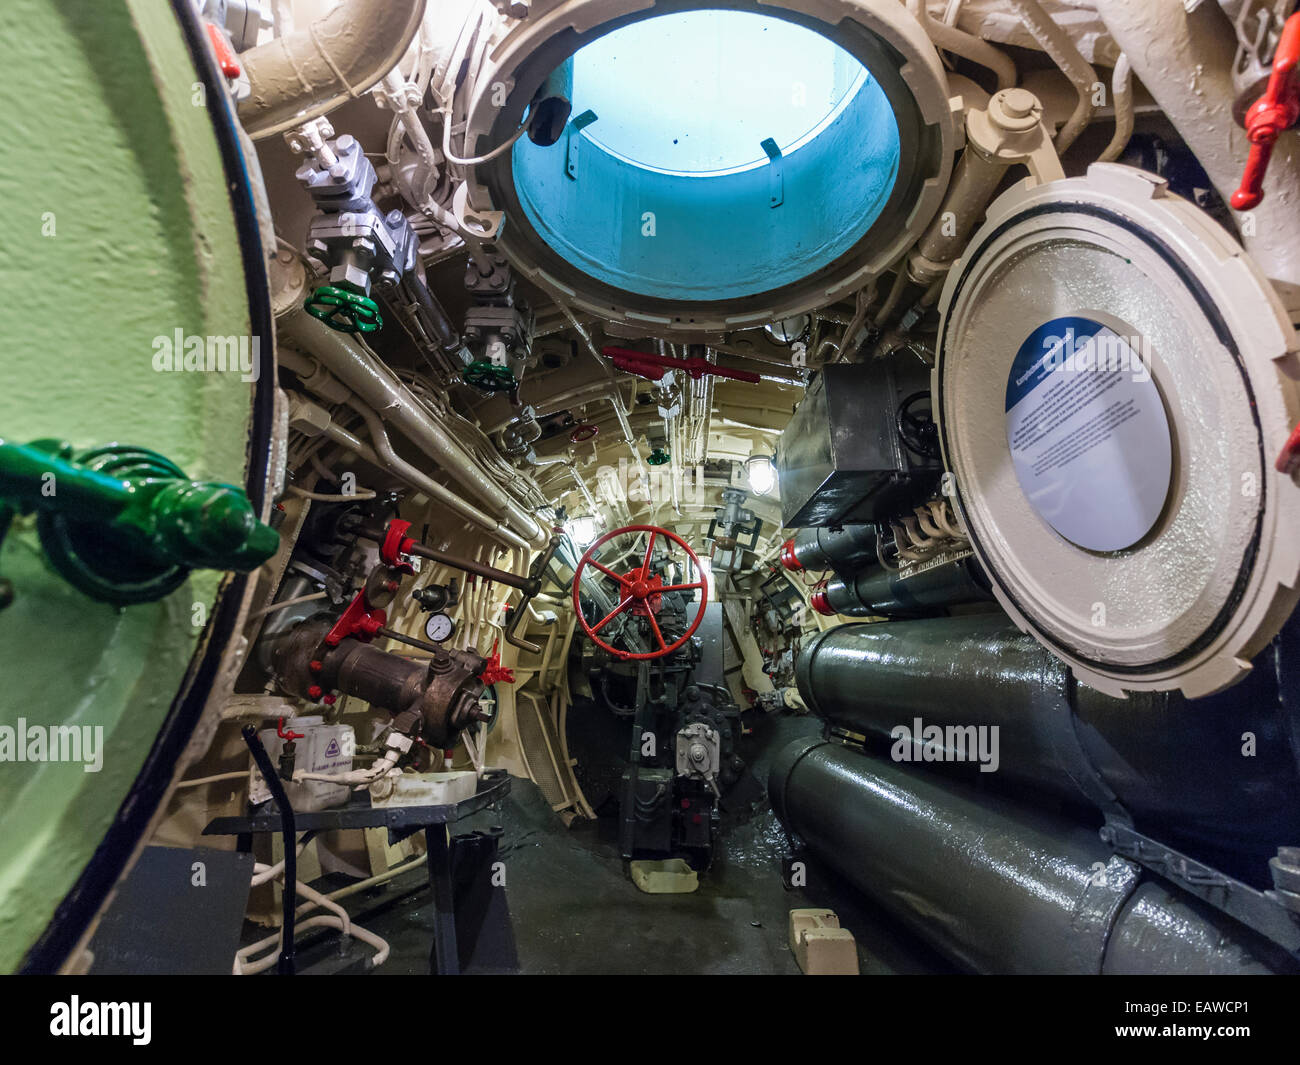 Hatch of the historic German submarine U-2540 'Wilhelm Bauer', now a museum ship in Bremerhafen, Germany. - Stock Image